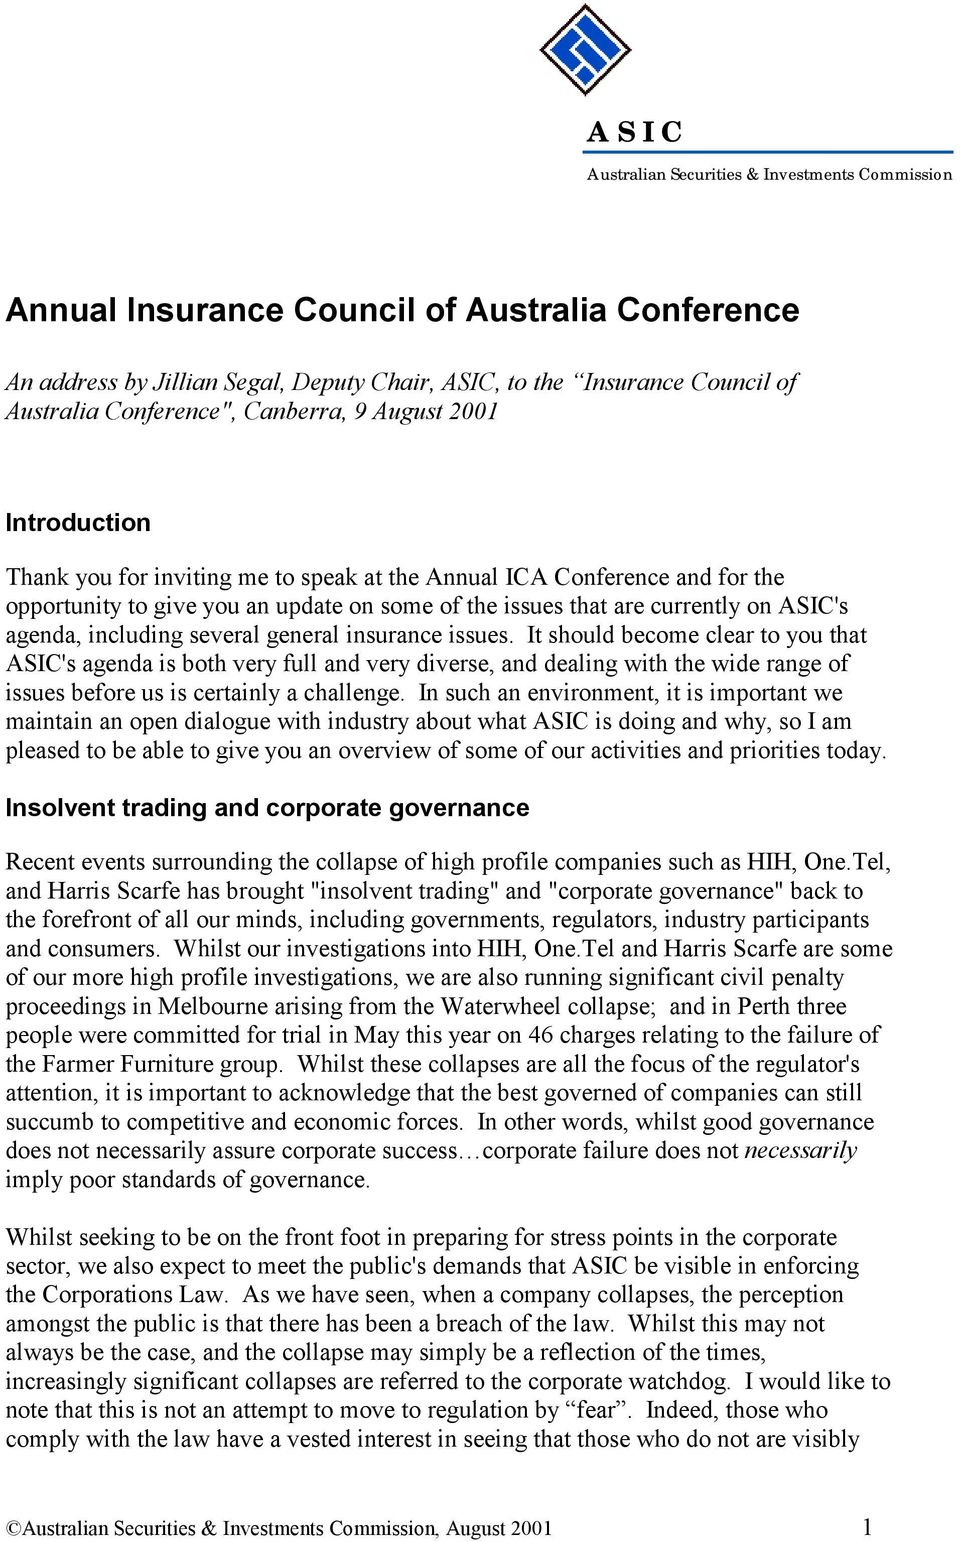 currently on ASIC's agenda, including several general insurance issues.